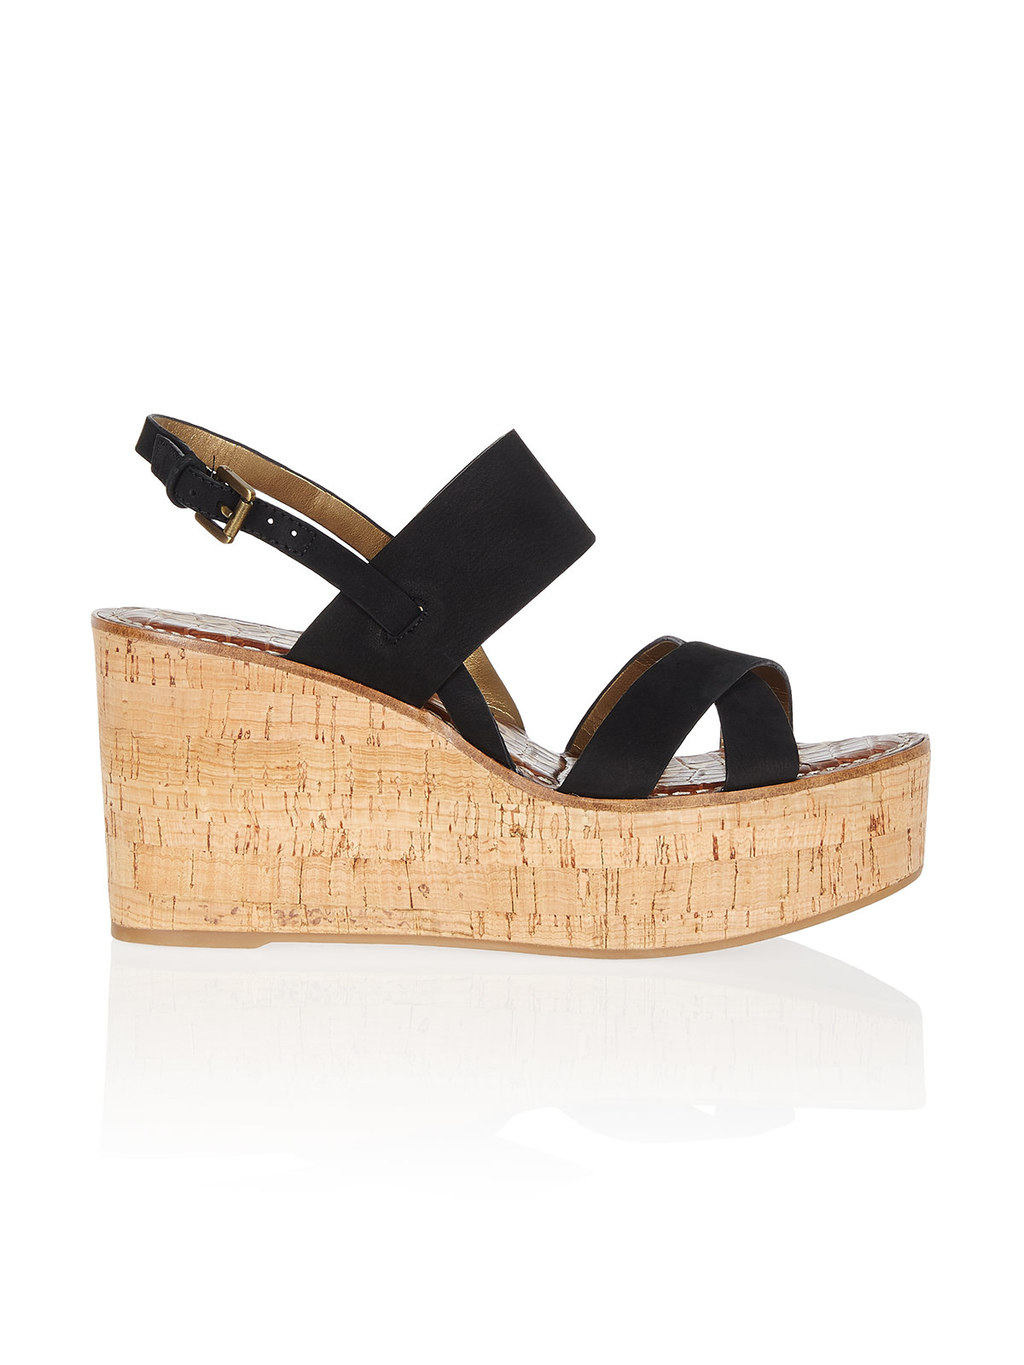 Destiny Black Sandal - predominant colour: black; occasions: casual, holiday; material: suede; heel height: high; heel: wedge; toe: open toe/peeptoe; style: strappy; finish: plain; pattern: plain; shoe detail: platform; season: s/s 2016